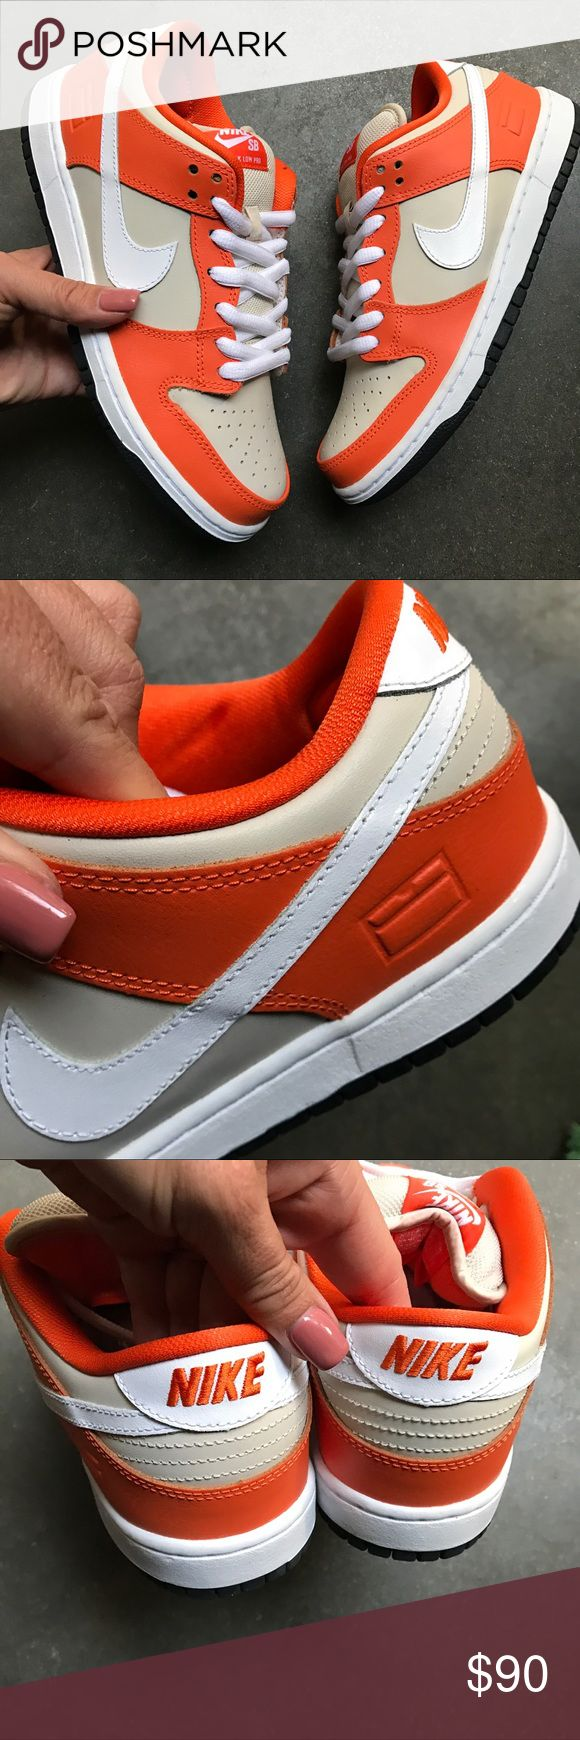 NEW 🏀 NIKE SB DUNK LOW PREMIUM FITS WOMEN S 8.5-9 PUT YOUR BEST FOOT FORWARD IN THESE! 🏀 ORANGE BOX EDITION, REPRESENTING THE ICONIC NIKE SHOE BOX IN SIGNATURE ORANGE | 100% AUTHENTIC. NO ORIGINAL NIKE BOX.  SIZE 7 MEN APPROX FITS WOMENS SZ 8.5-9. Please know your men's NIKE size prior to ordering.   ONE PAIR IS AVAILABLE.  SHIPS SAME OR NEXT DAY FROM MY SMOKE FREE HOME.   BUNDLE TO SAVE. ✨   ALL PRODUCT IS 100% AUTHENTIC & DIRECT FROM NIKE. Nike Shoes Athletic Shoes